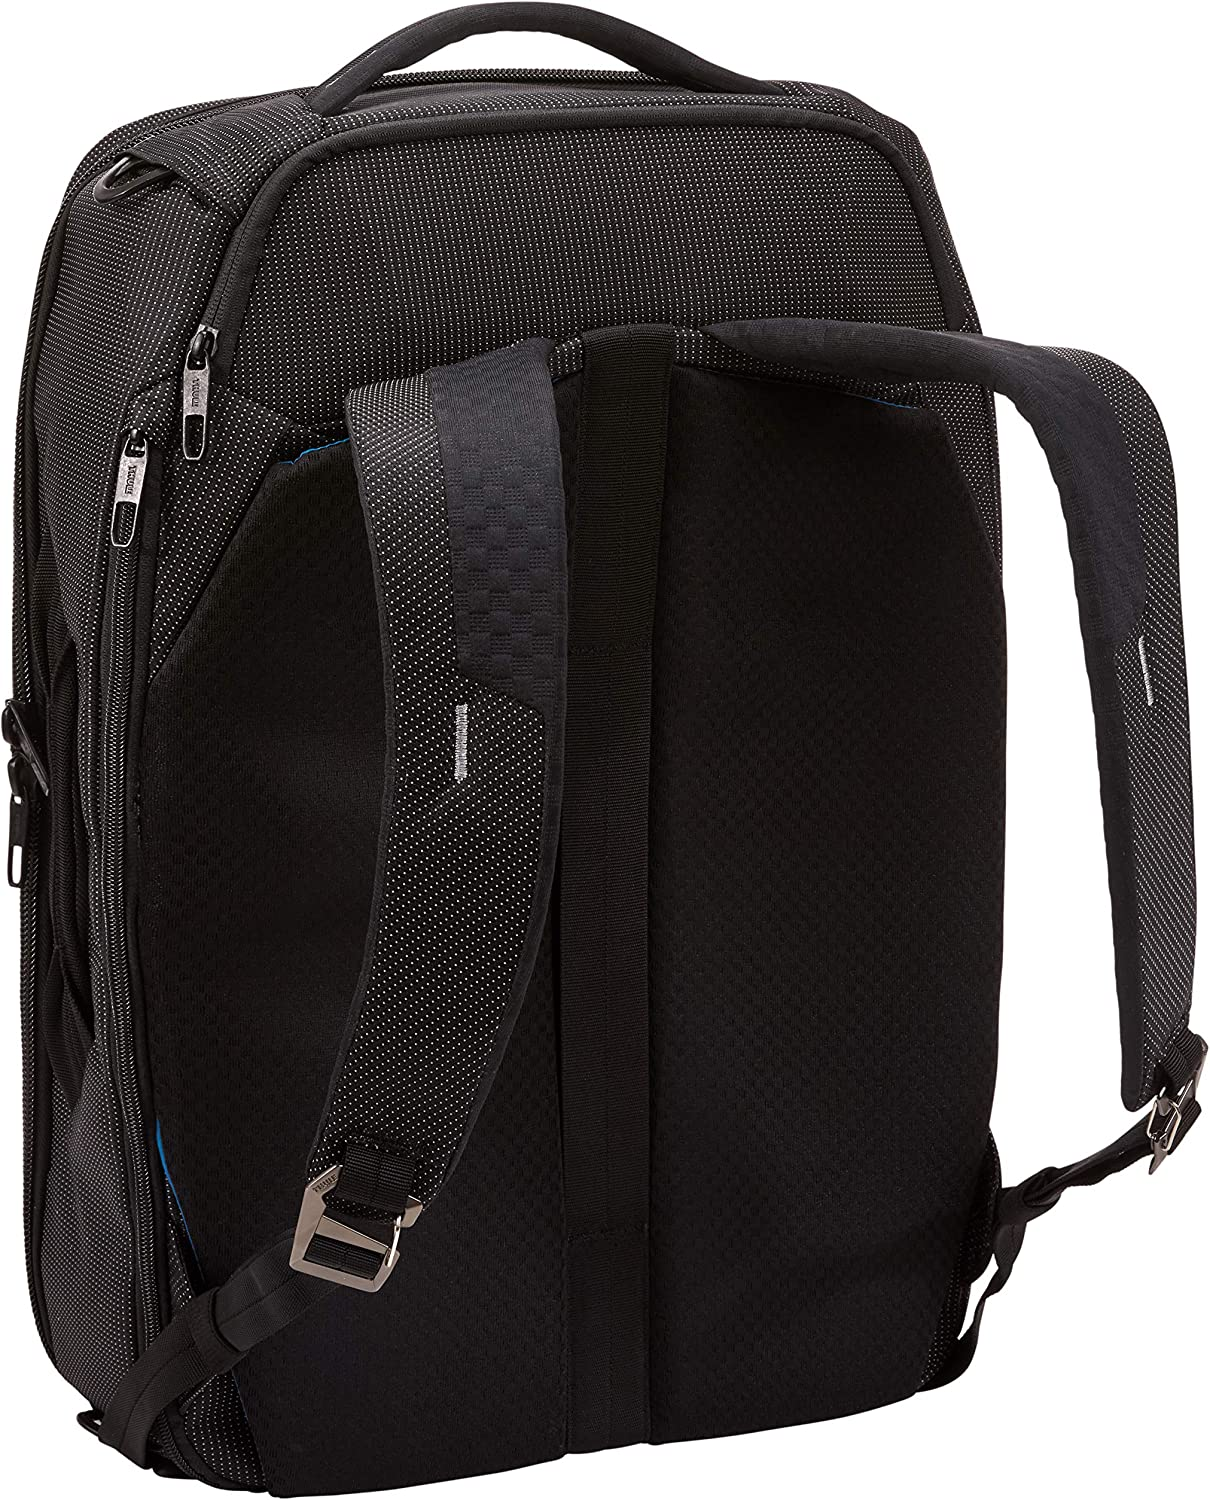 Sac /à dos Thule Crossover 2